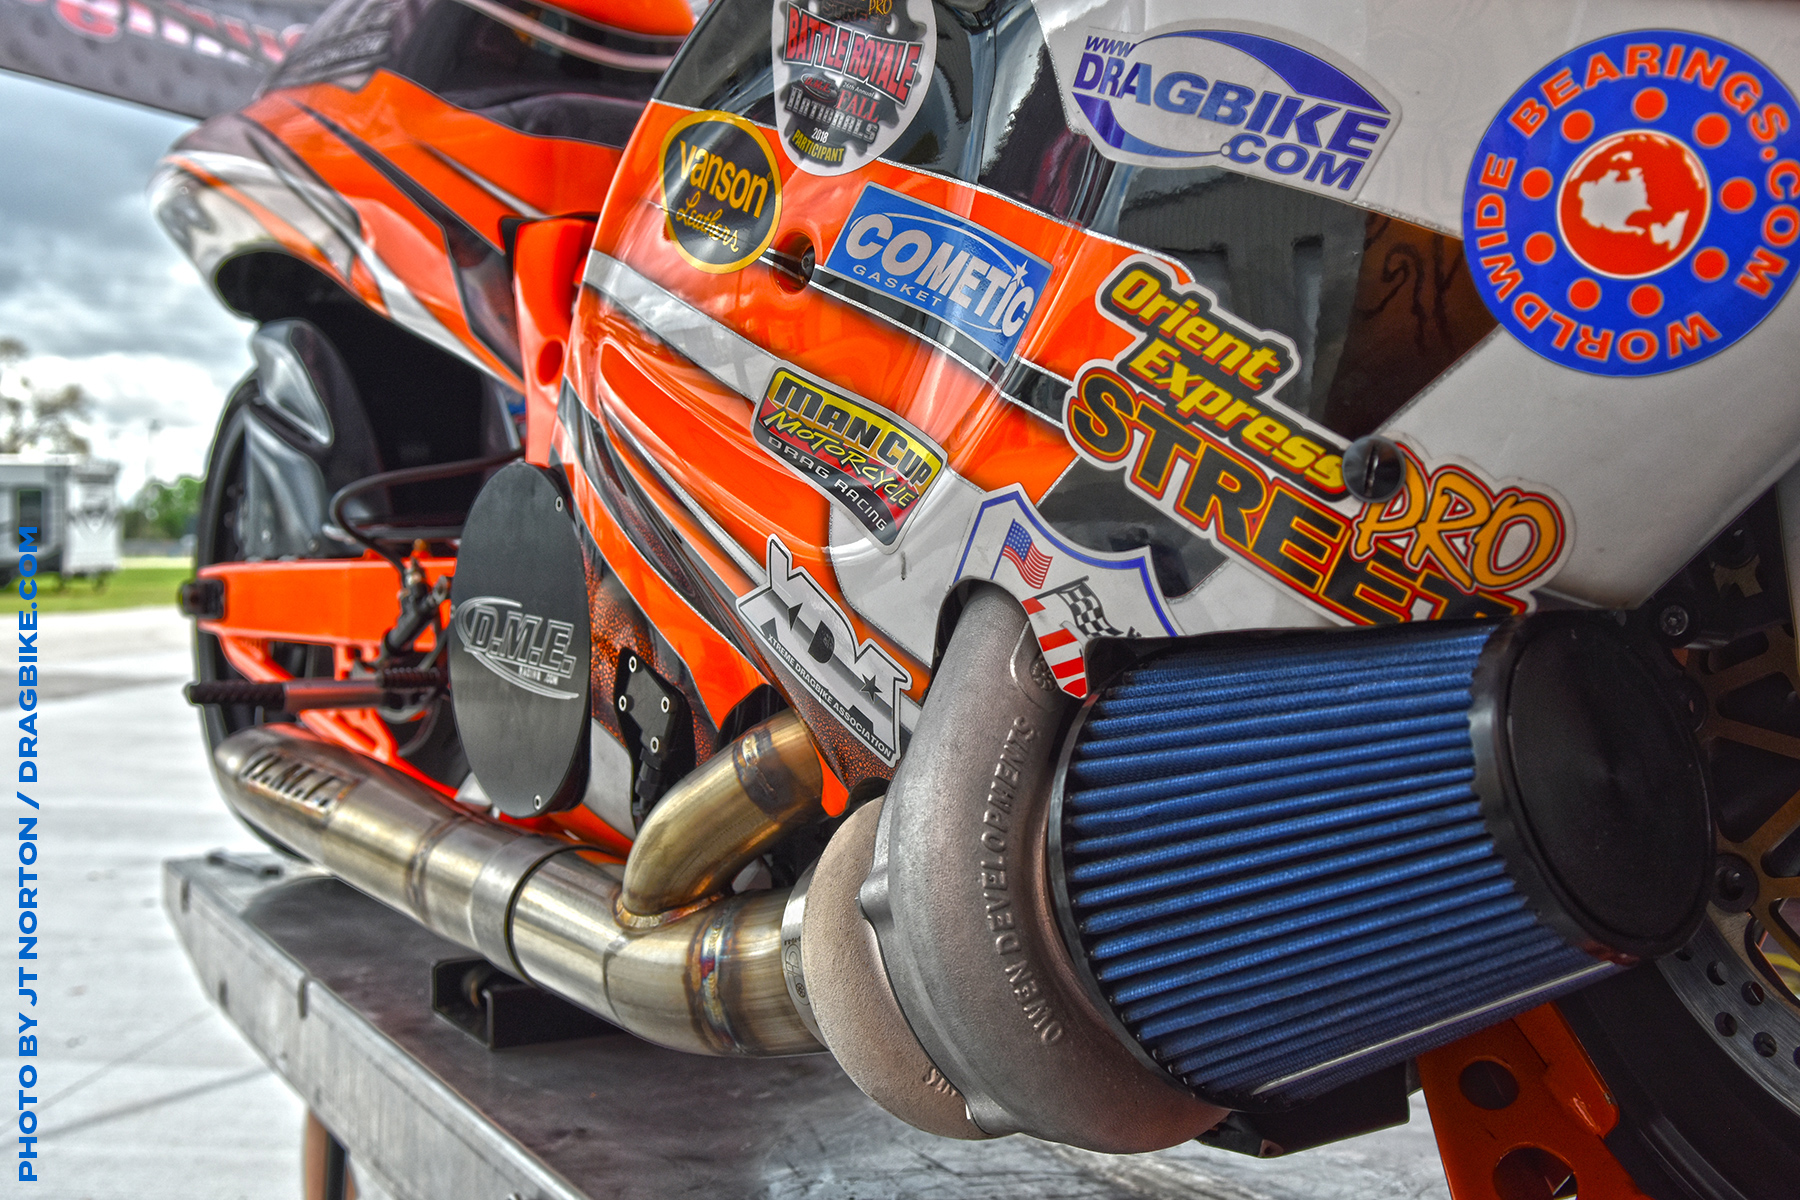 DME Racing – When You're Ready!